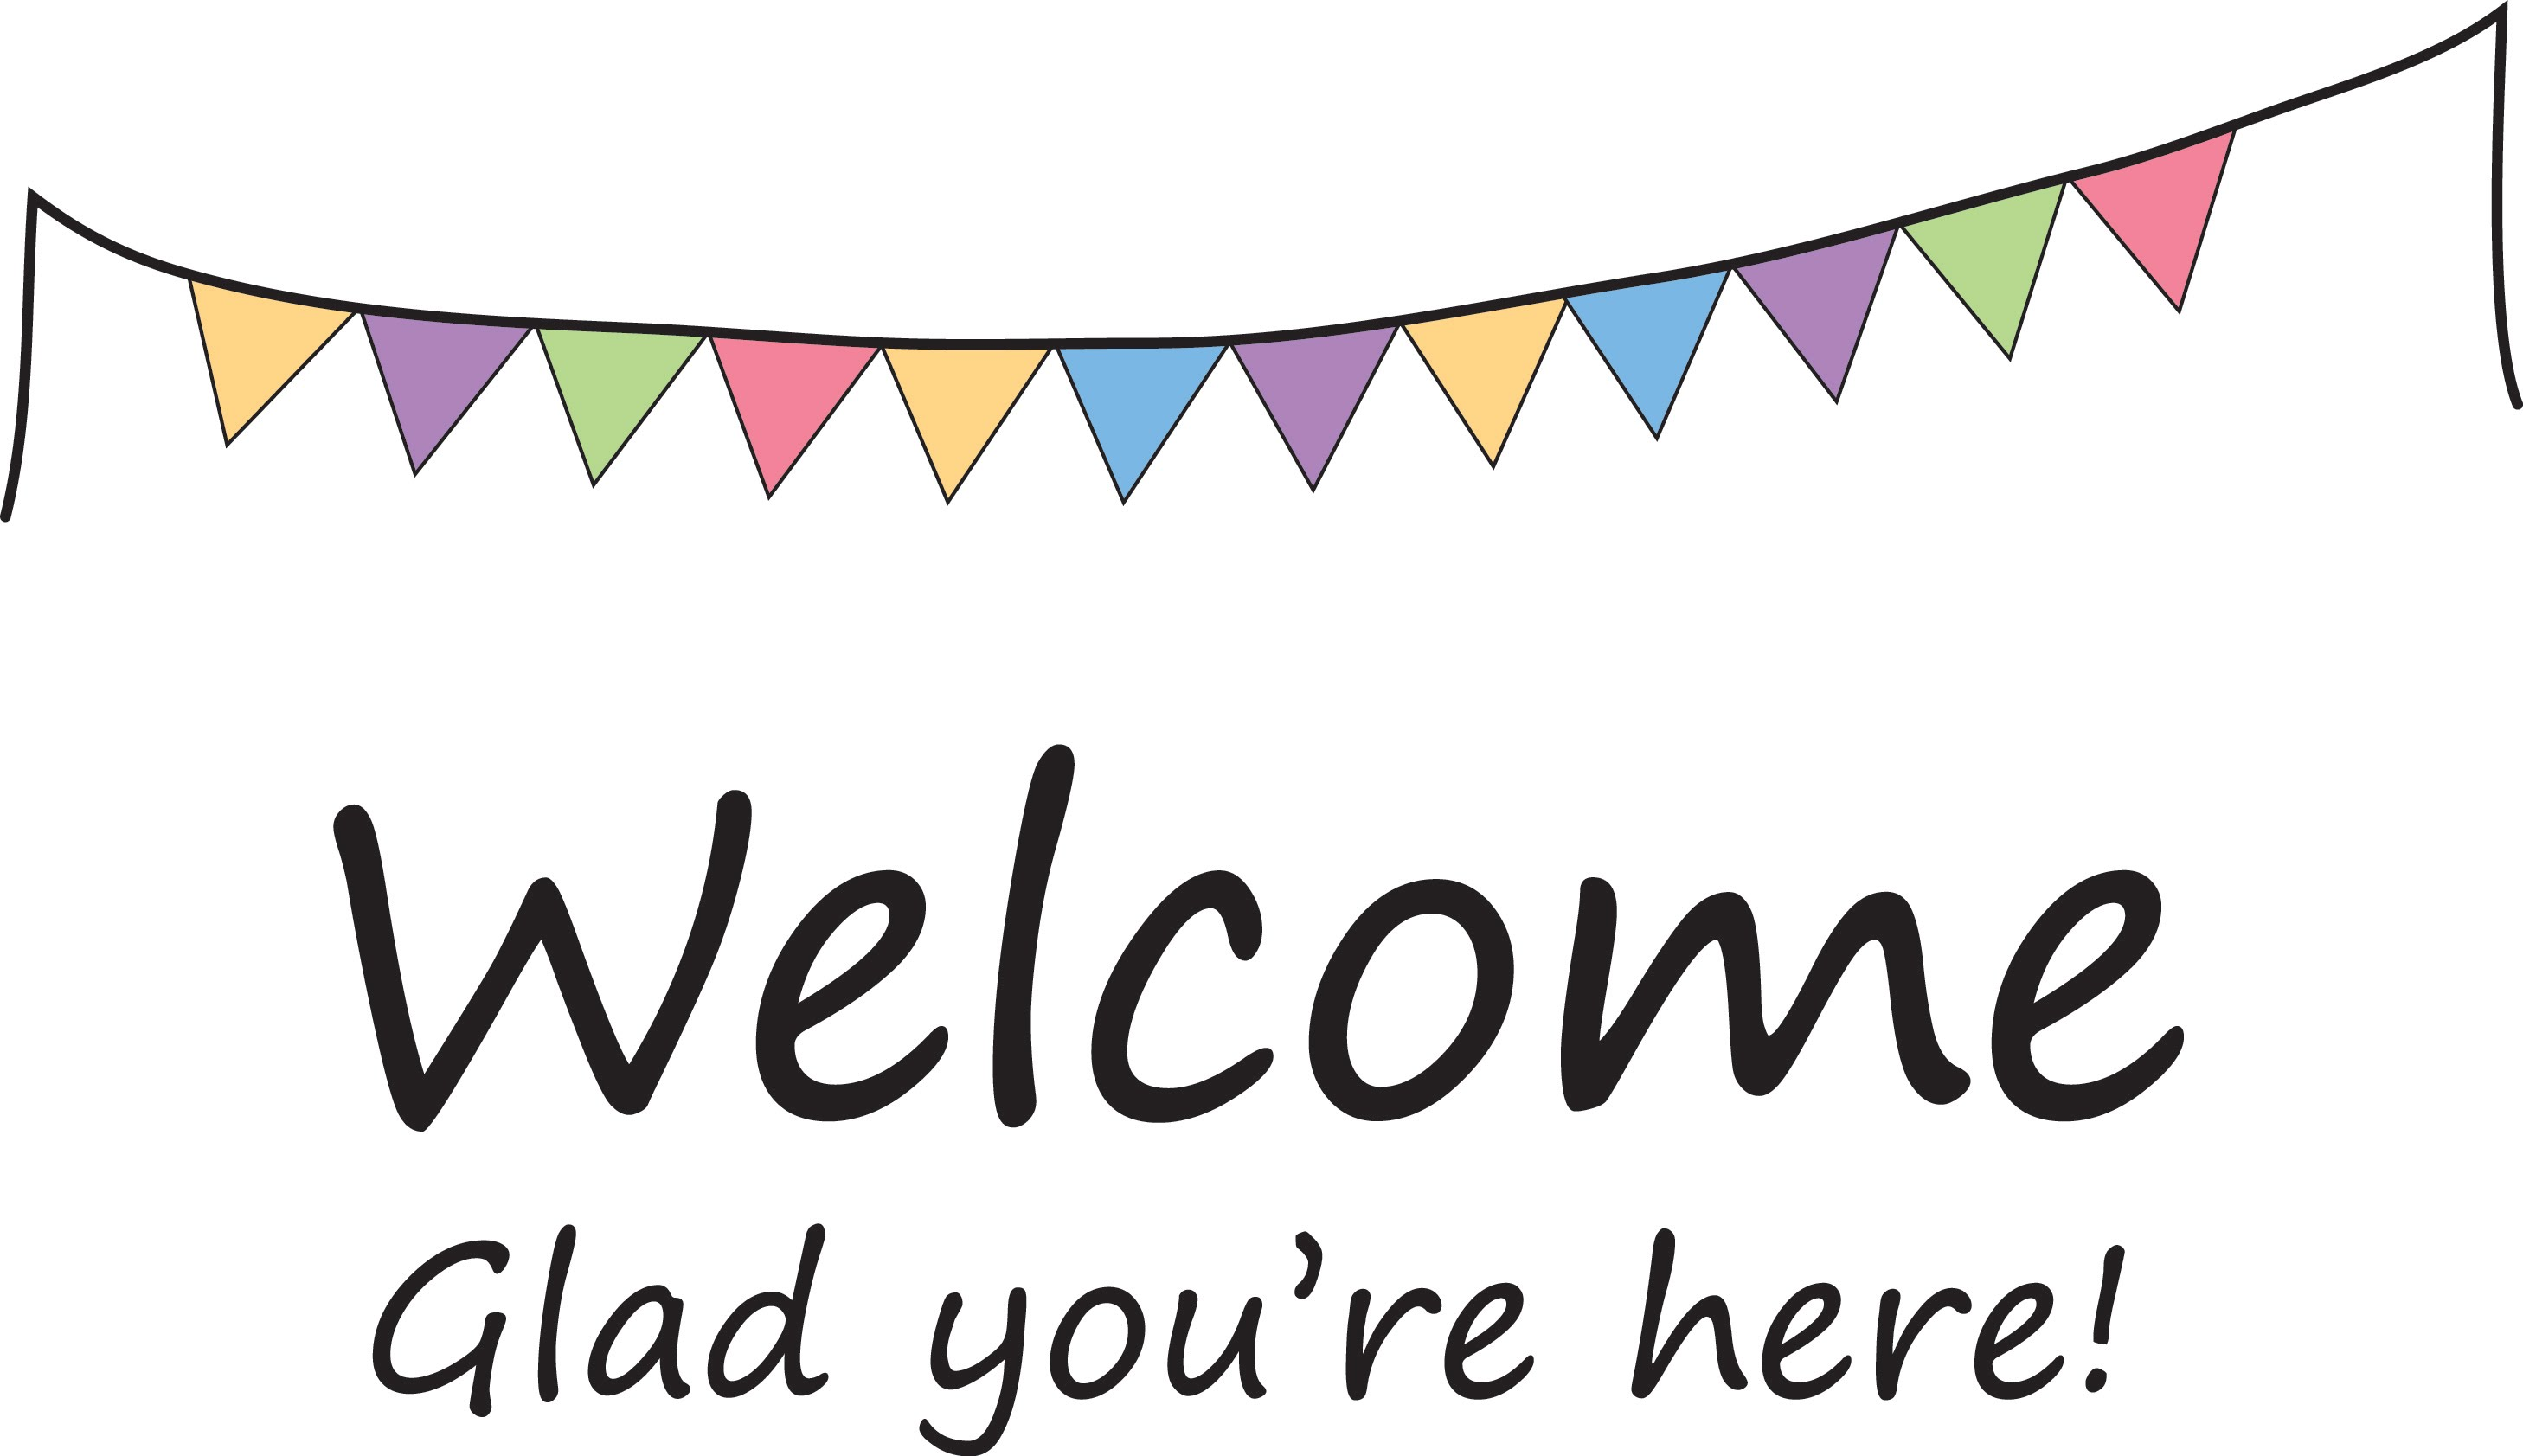 image about Welcome Sign Template identify Totally free Clipart Welcome Indicator Free of charge down load most straightforward Free of charge Clipart